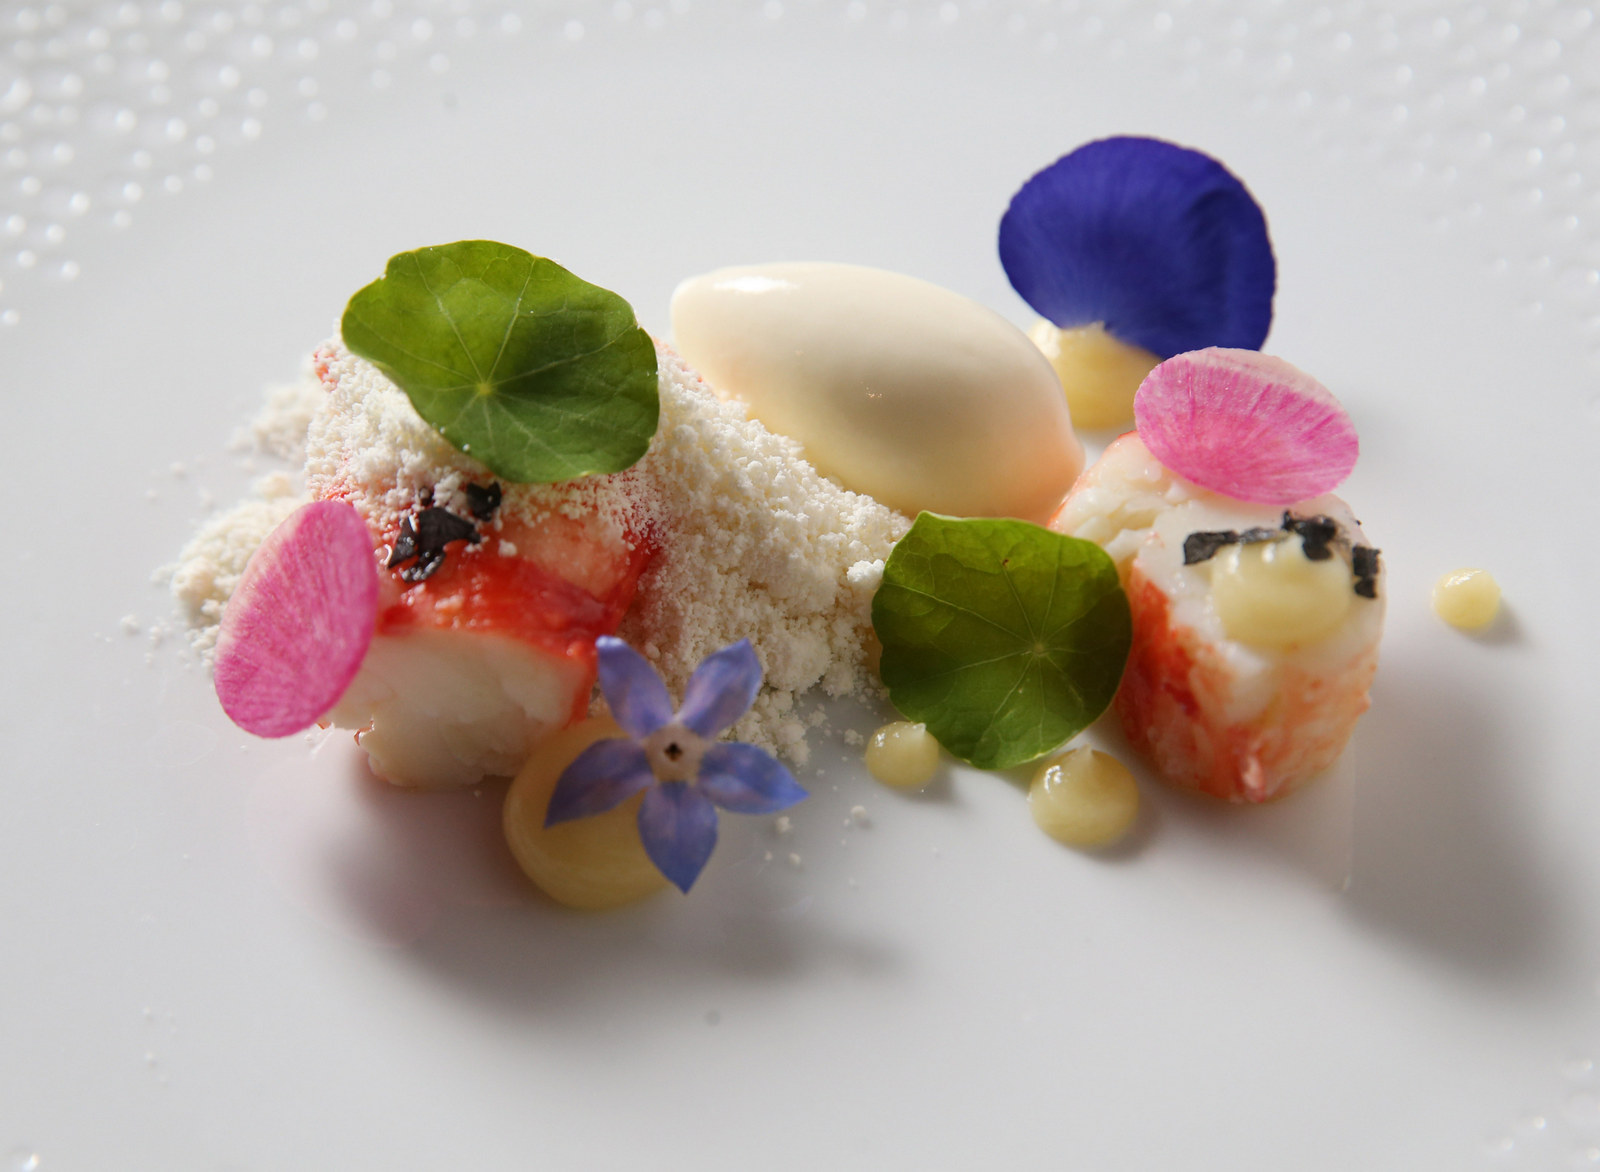 Oliver's Executive Chef Ross Warhol offers Tasting Tuesdays, five or seven courses of creative cuisine like this recent dish: chilled king crab leg, lemon puree, white chocolate powder, shaved watermelon radish and white asparagus ice cream. (Sharon Cantillon/Buffalo News)